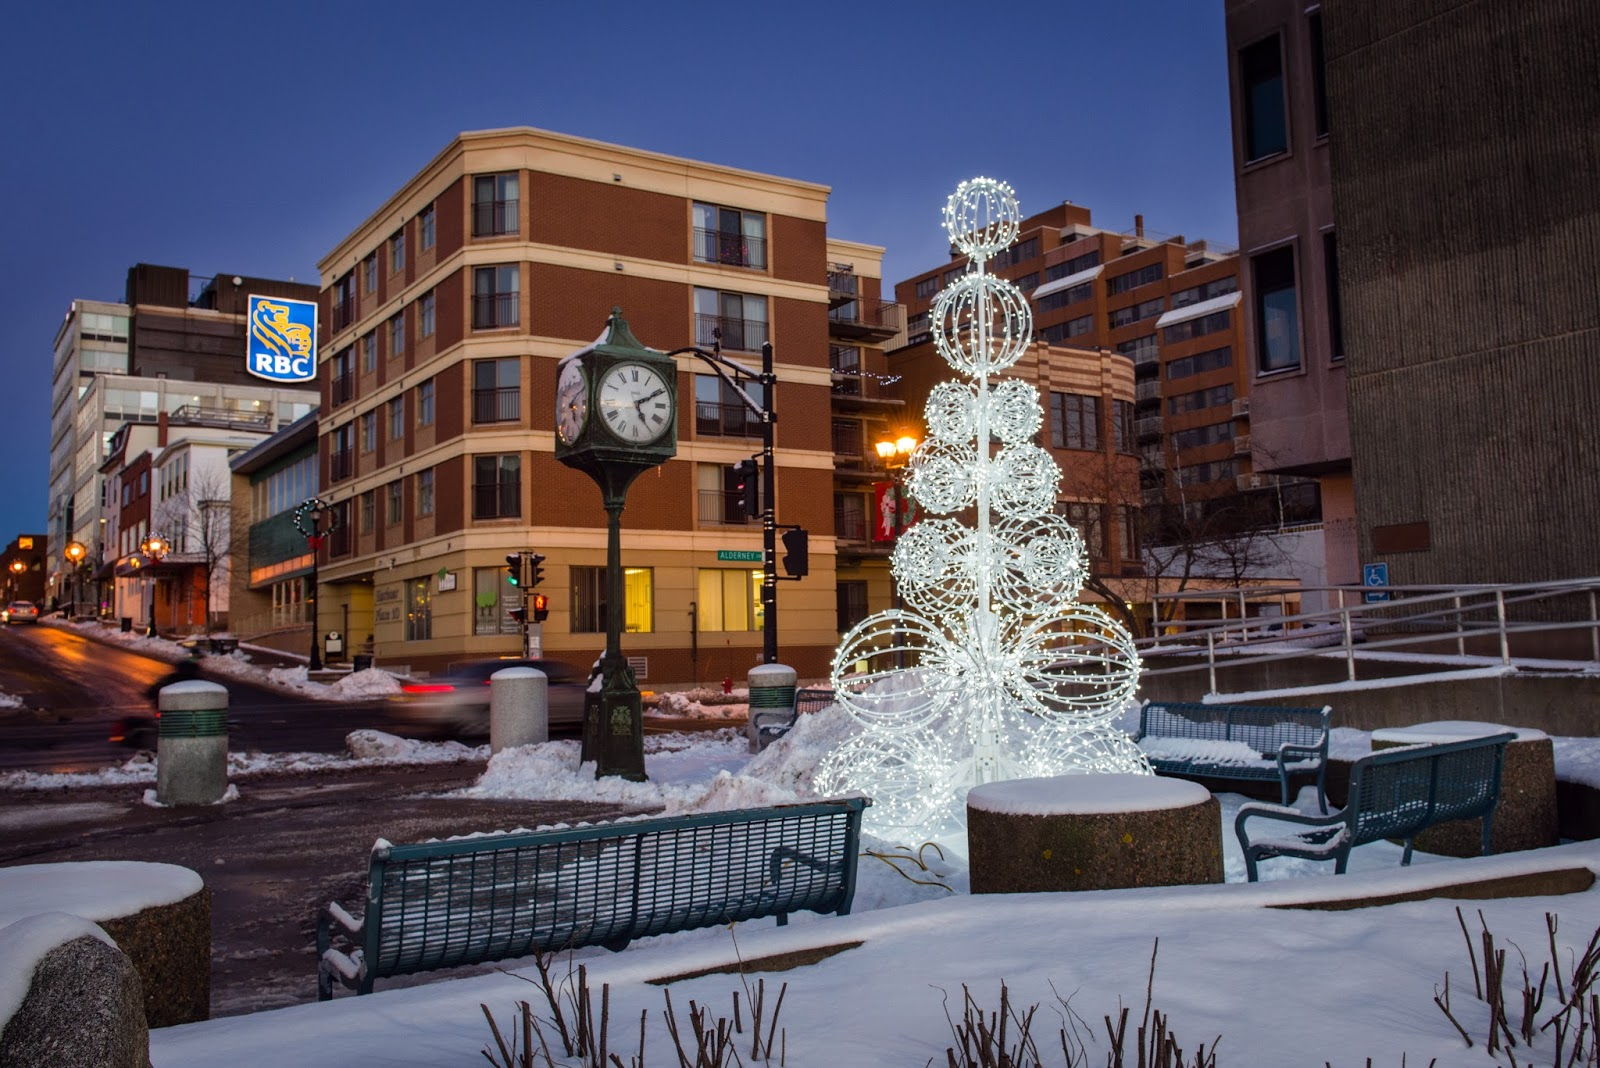 20130101-downtowndecorations-06